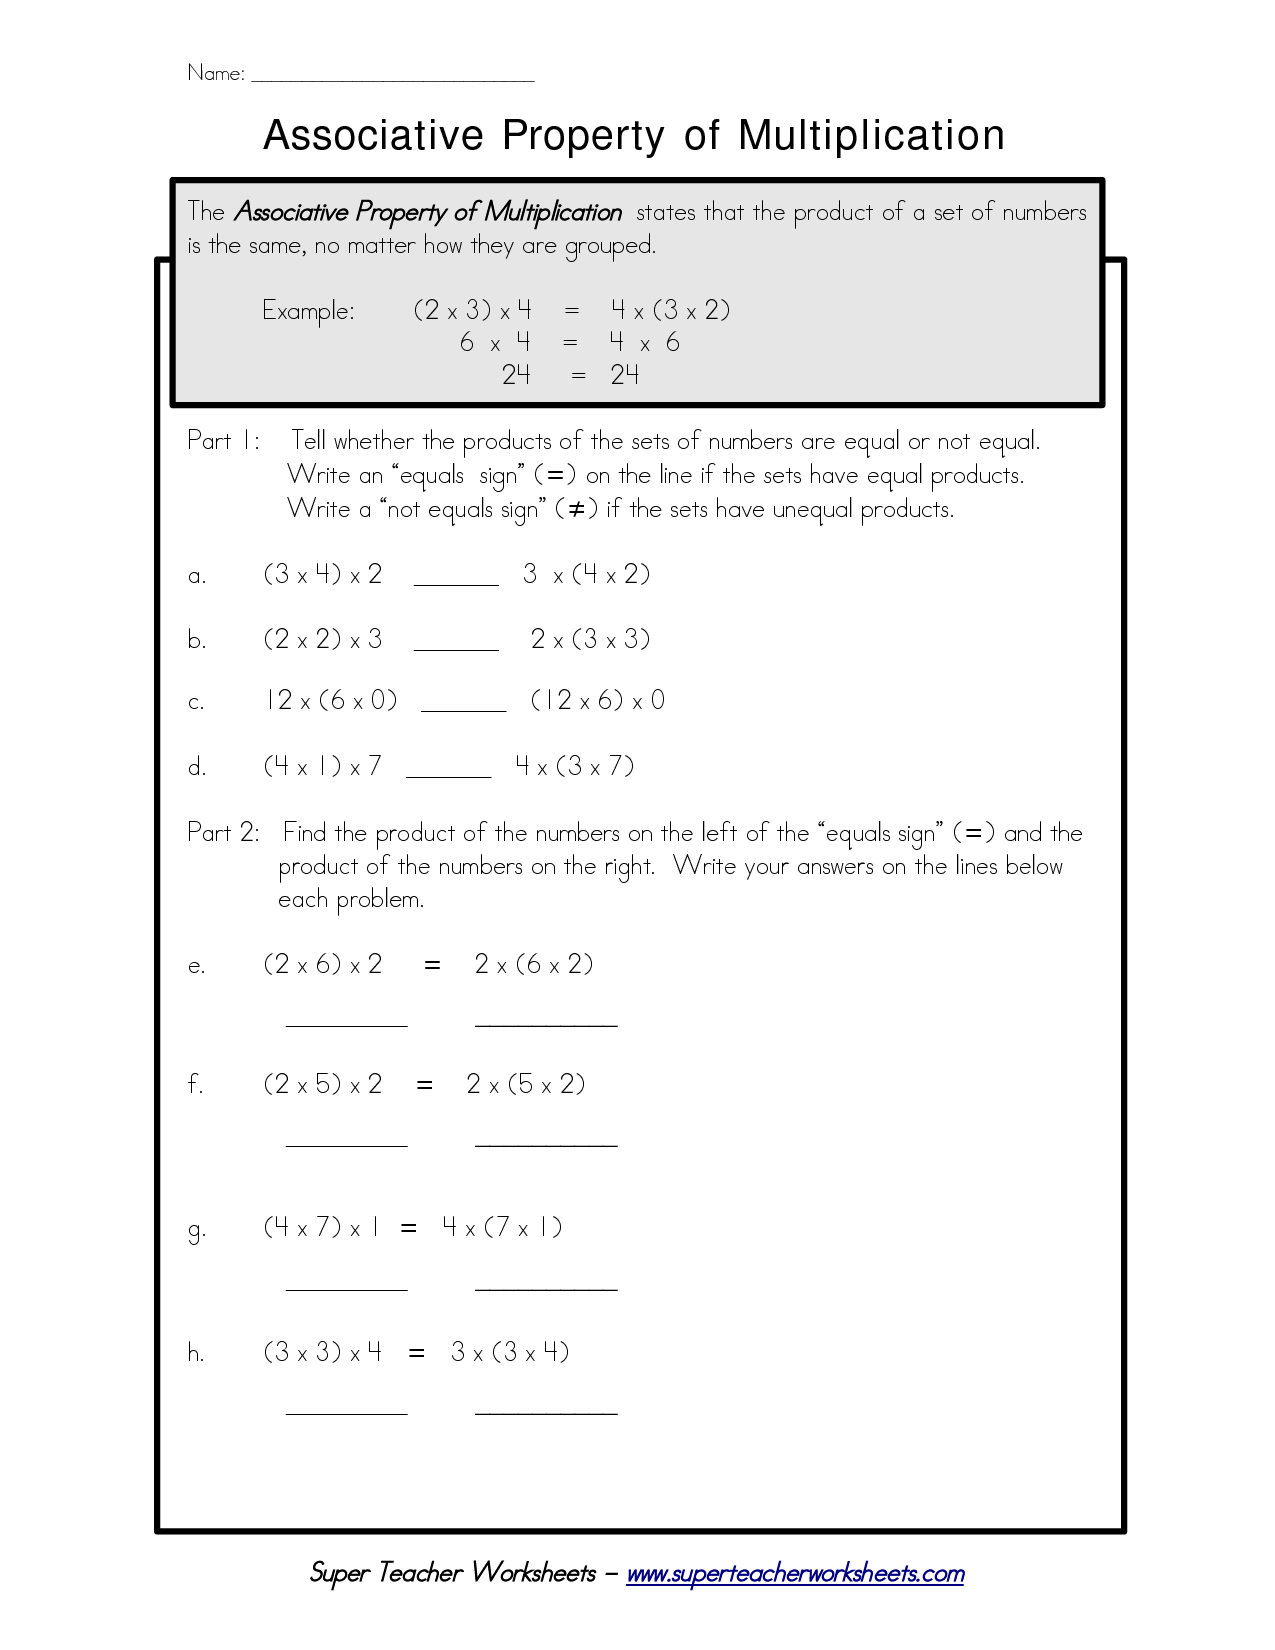 Worksheets Identifying Algebraic Properties Worksheet commutative property multiplication worksheets graphing picture identifying algebraic properties worksheet solve two step associative 685504 algebraic